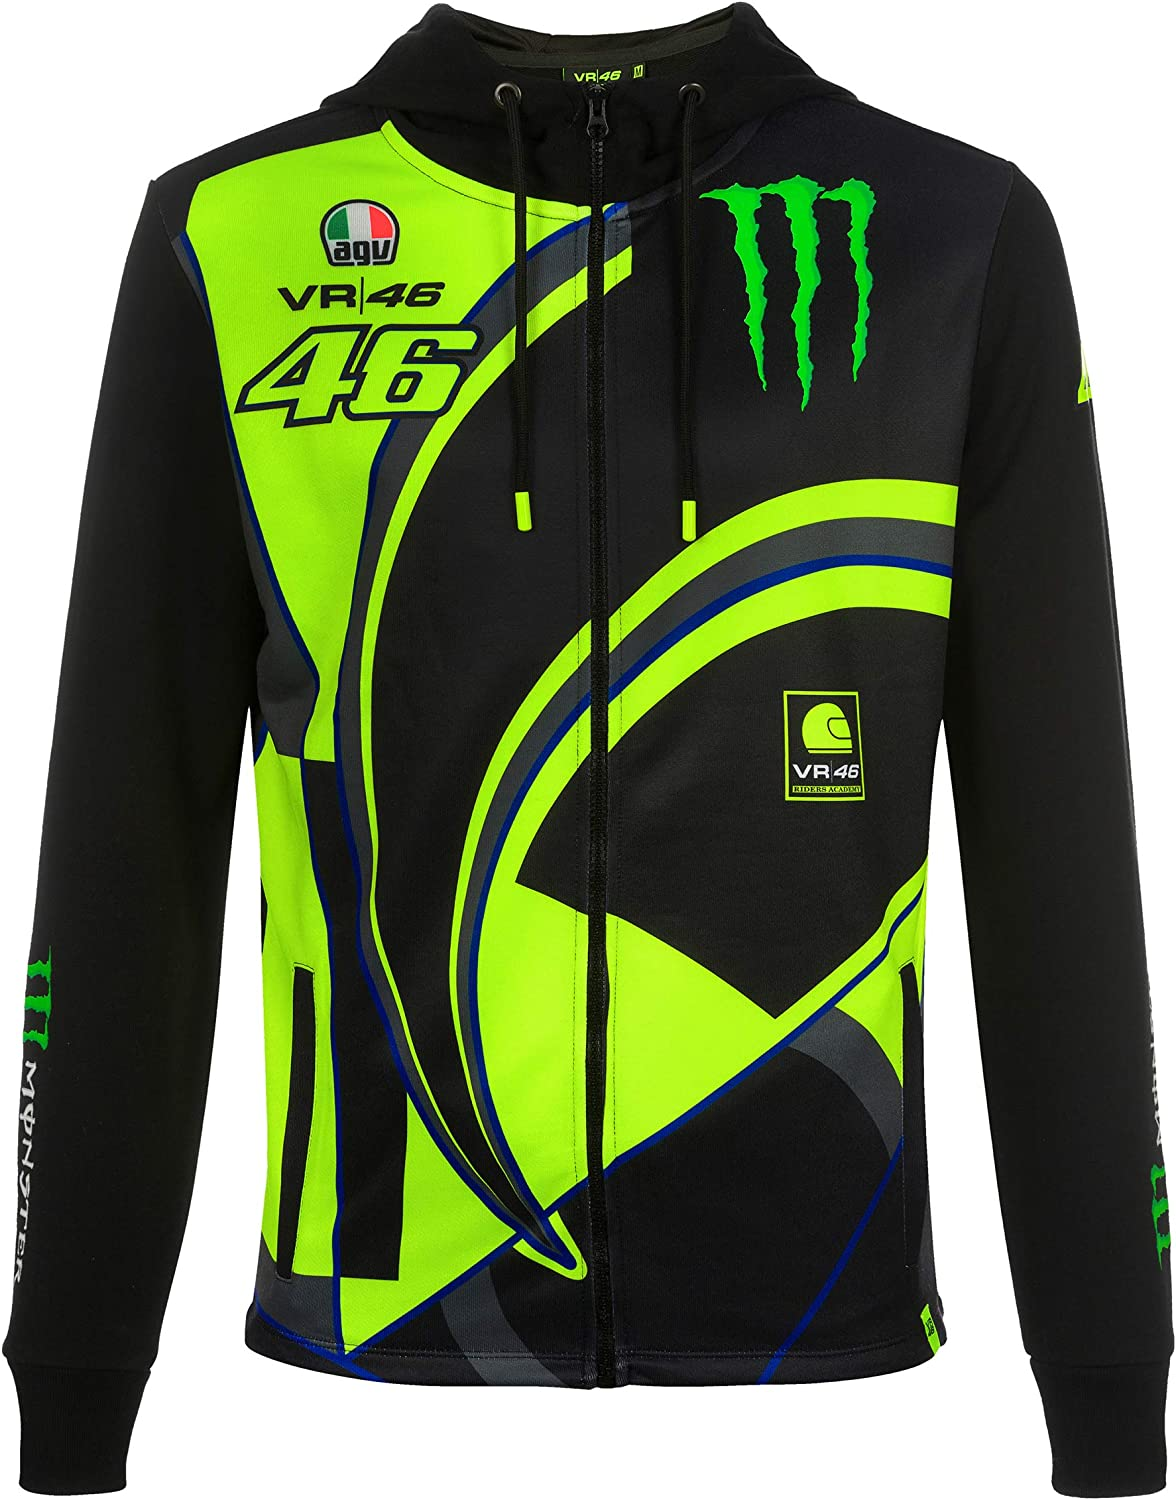 Kid Hoodie fleece Yamaha VR46 official Valentino Rossi 46 collection Located in